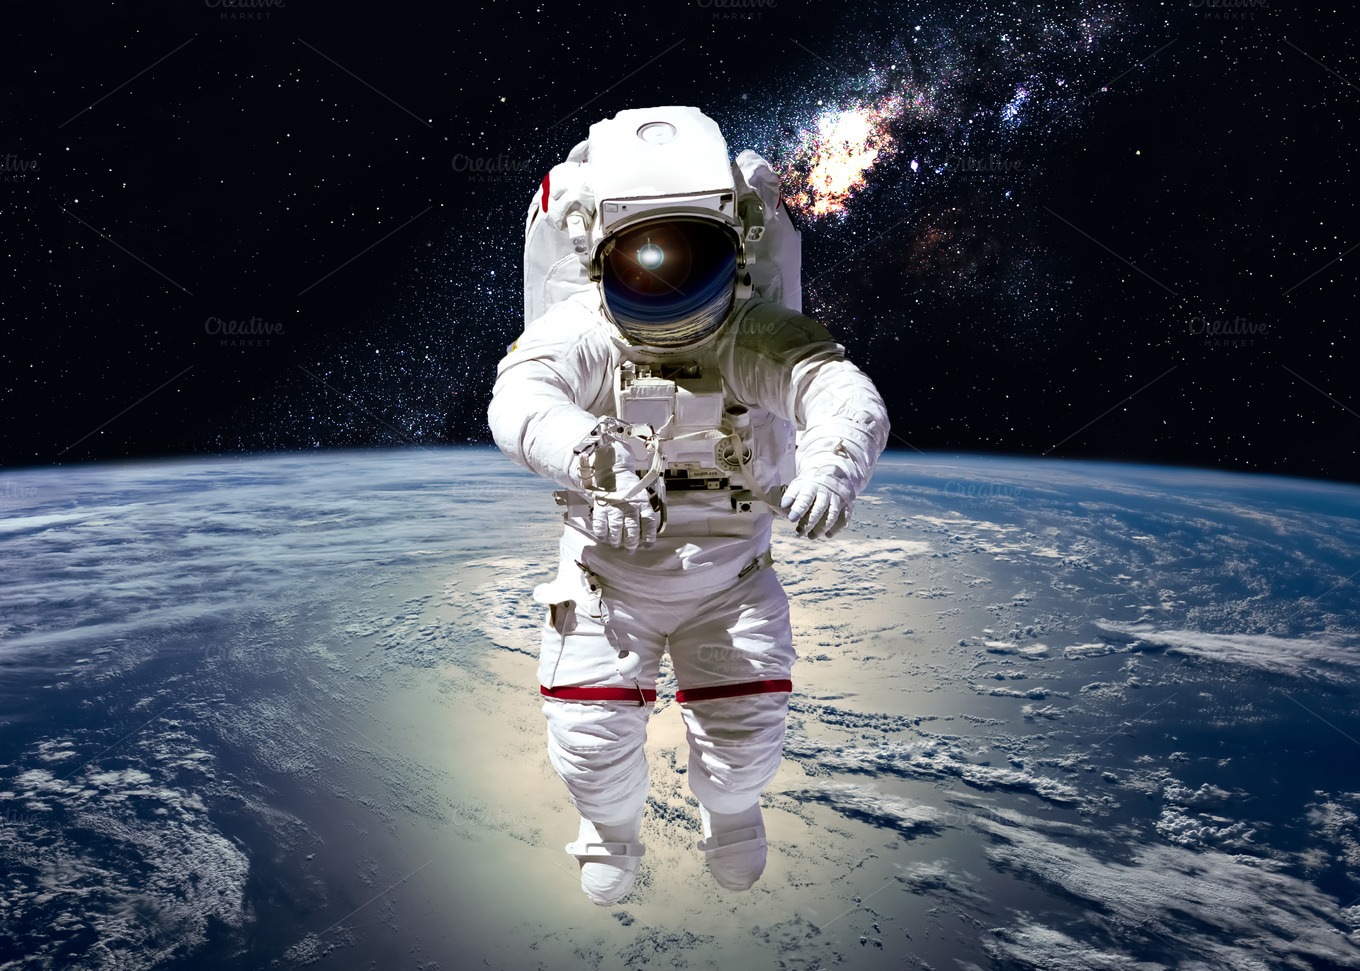 astronaut in outer space - photo #1